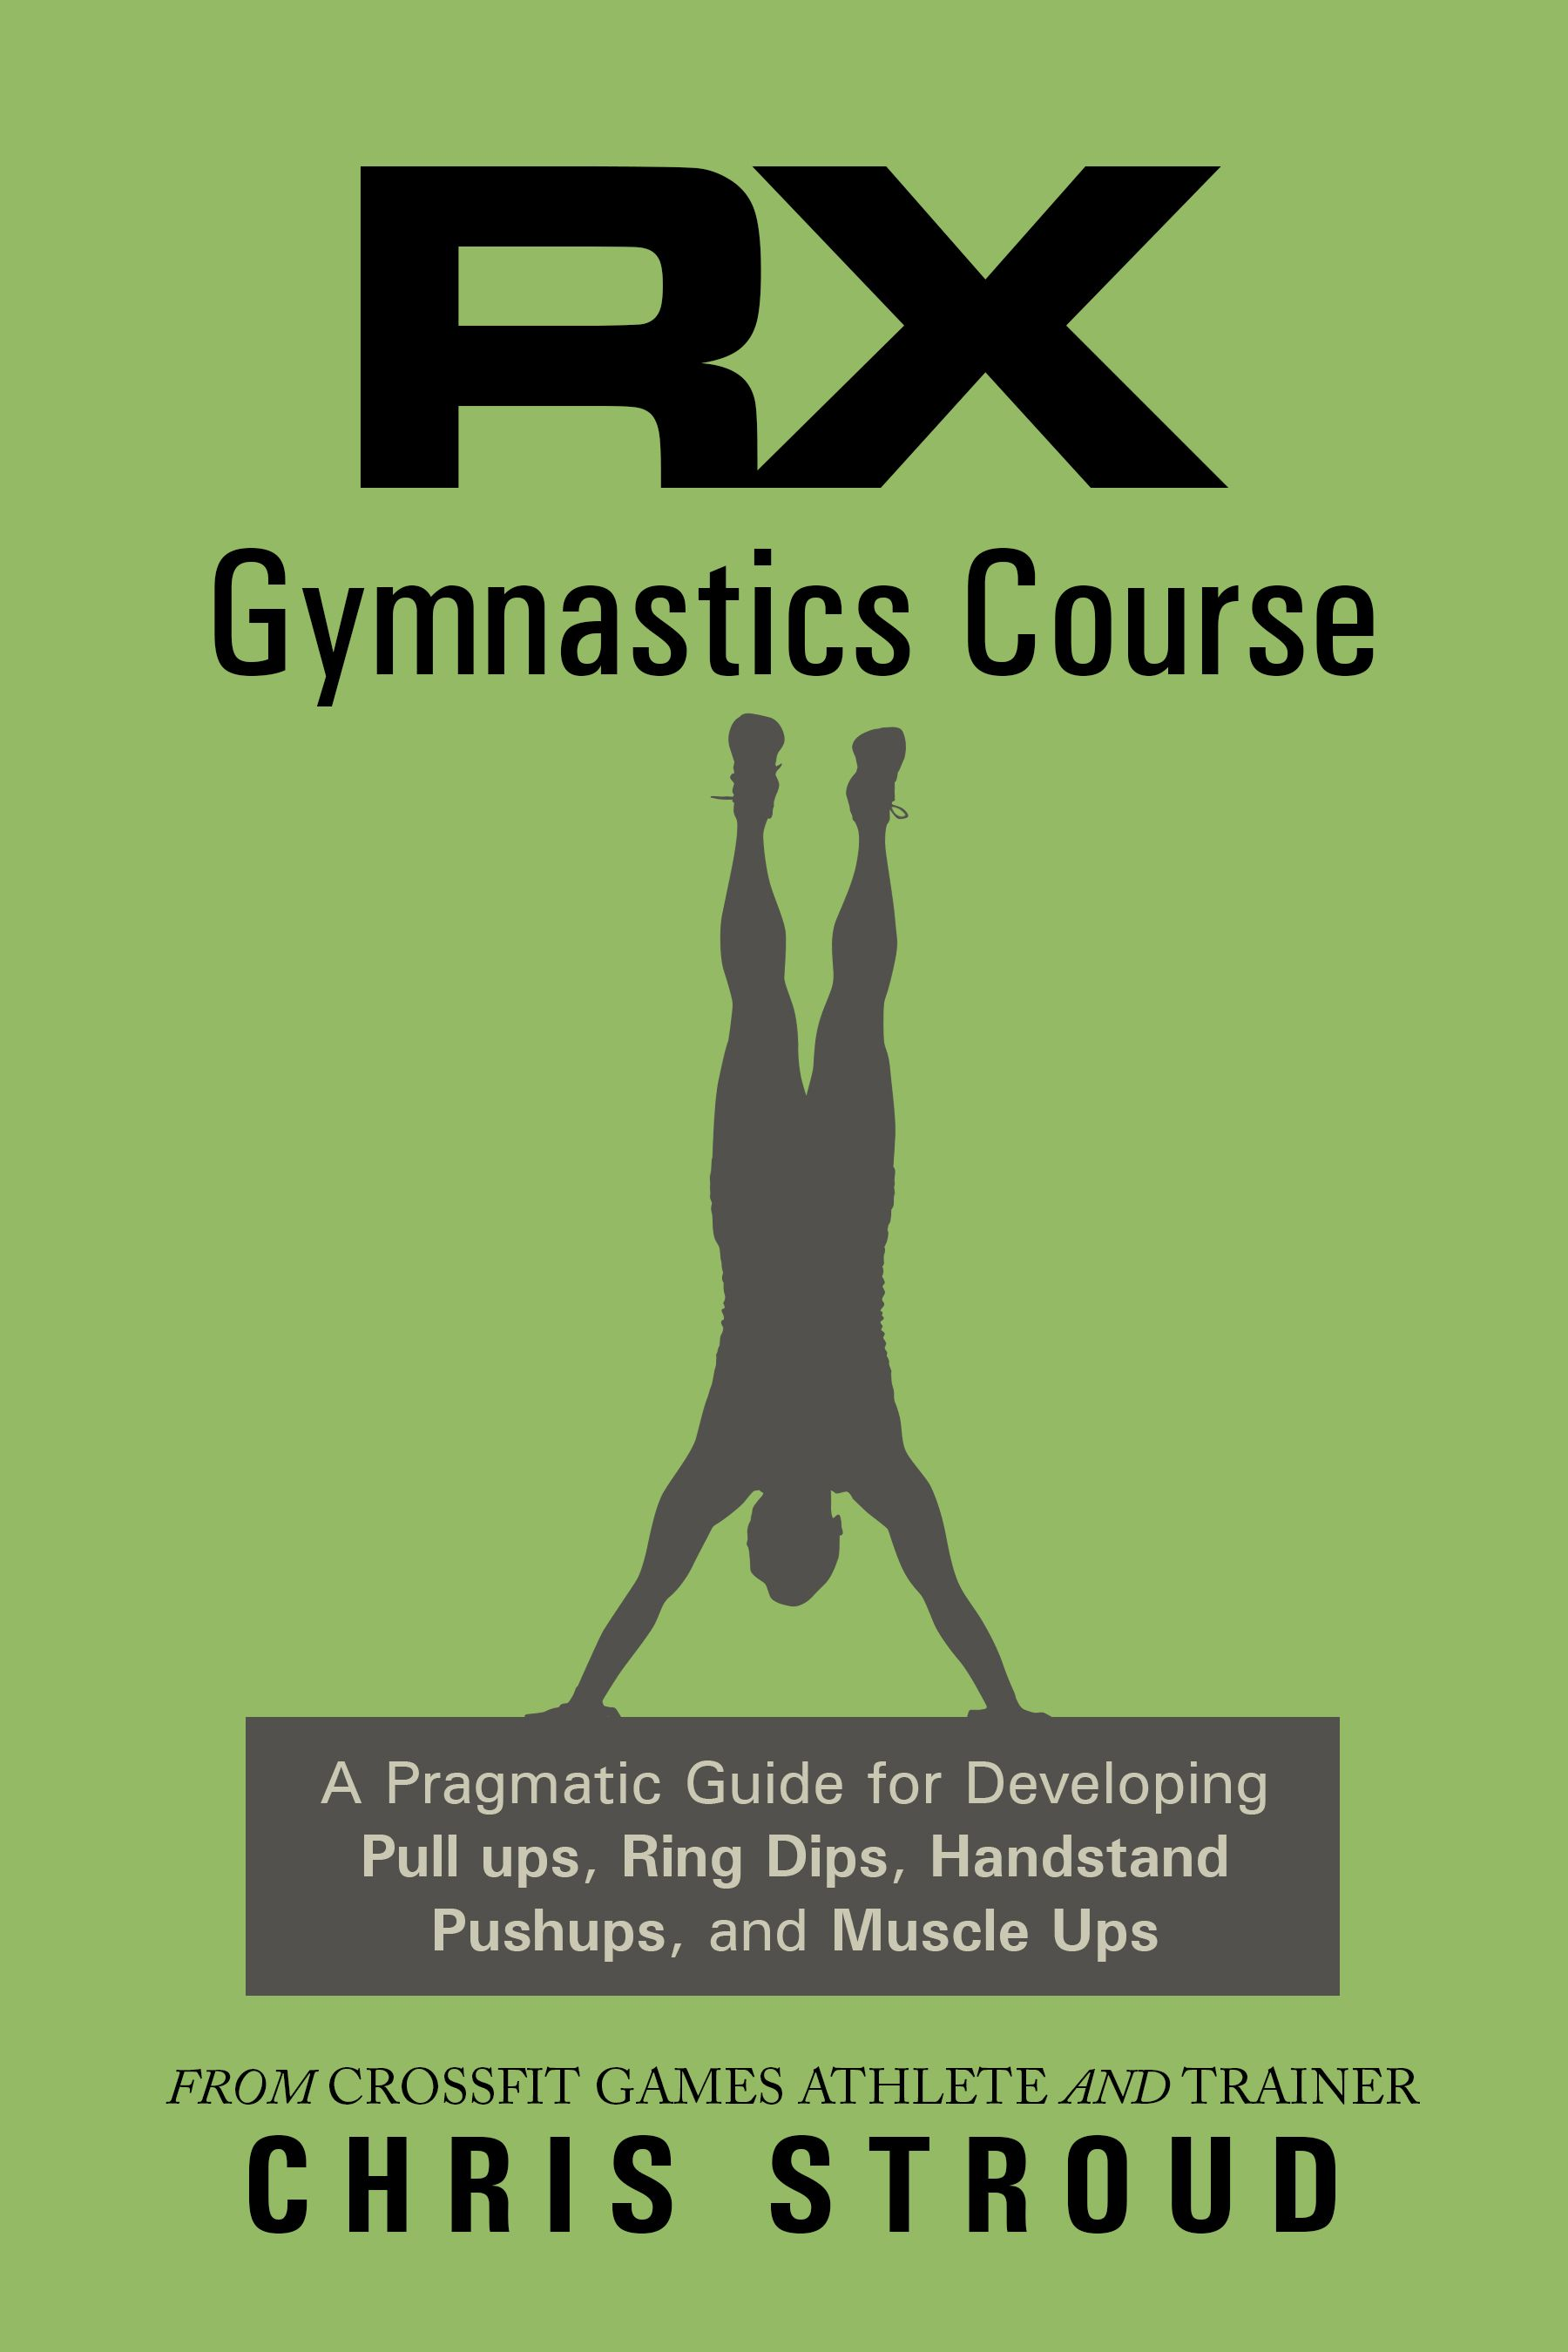 Handstand Pushups Progression Template For Crossfit Fitness Culture Blog